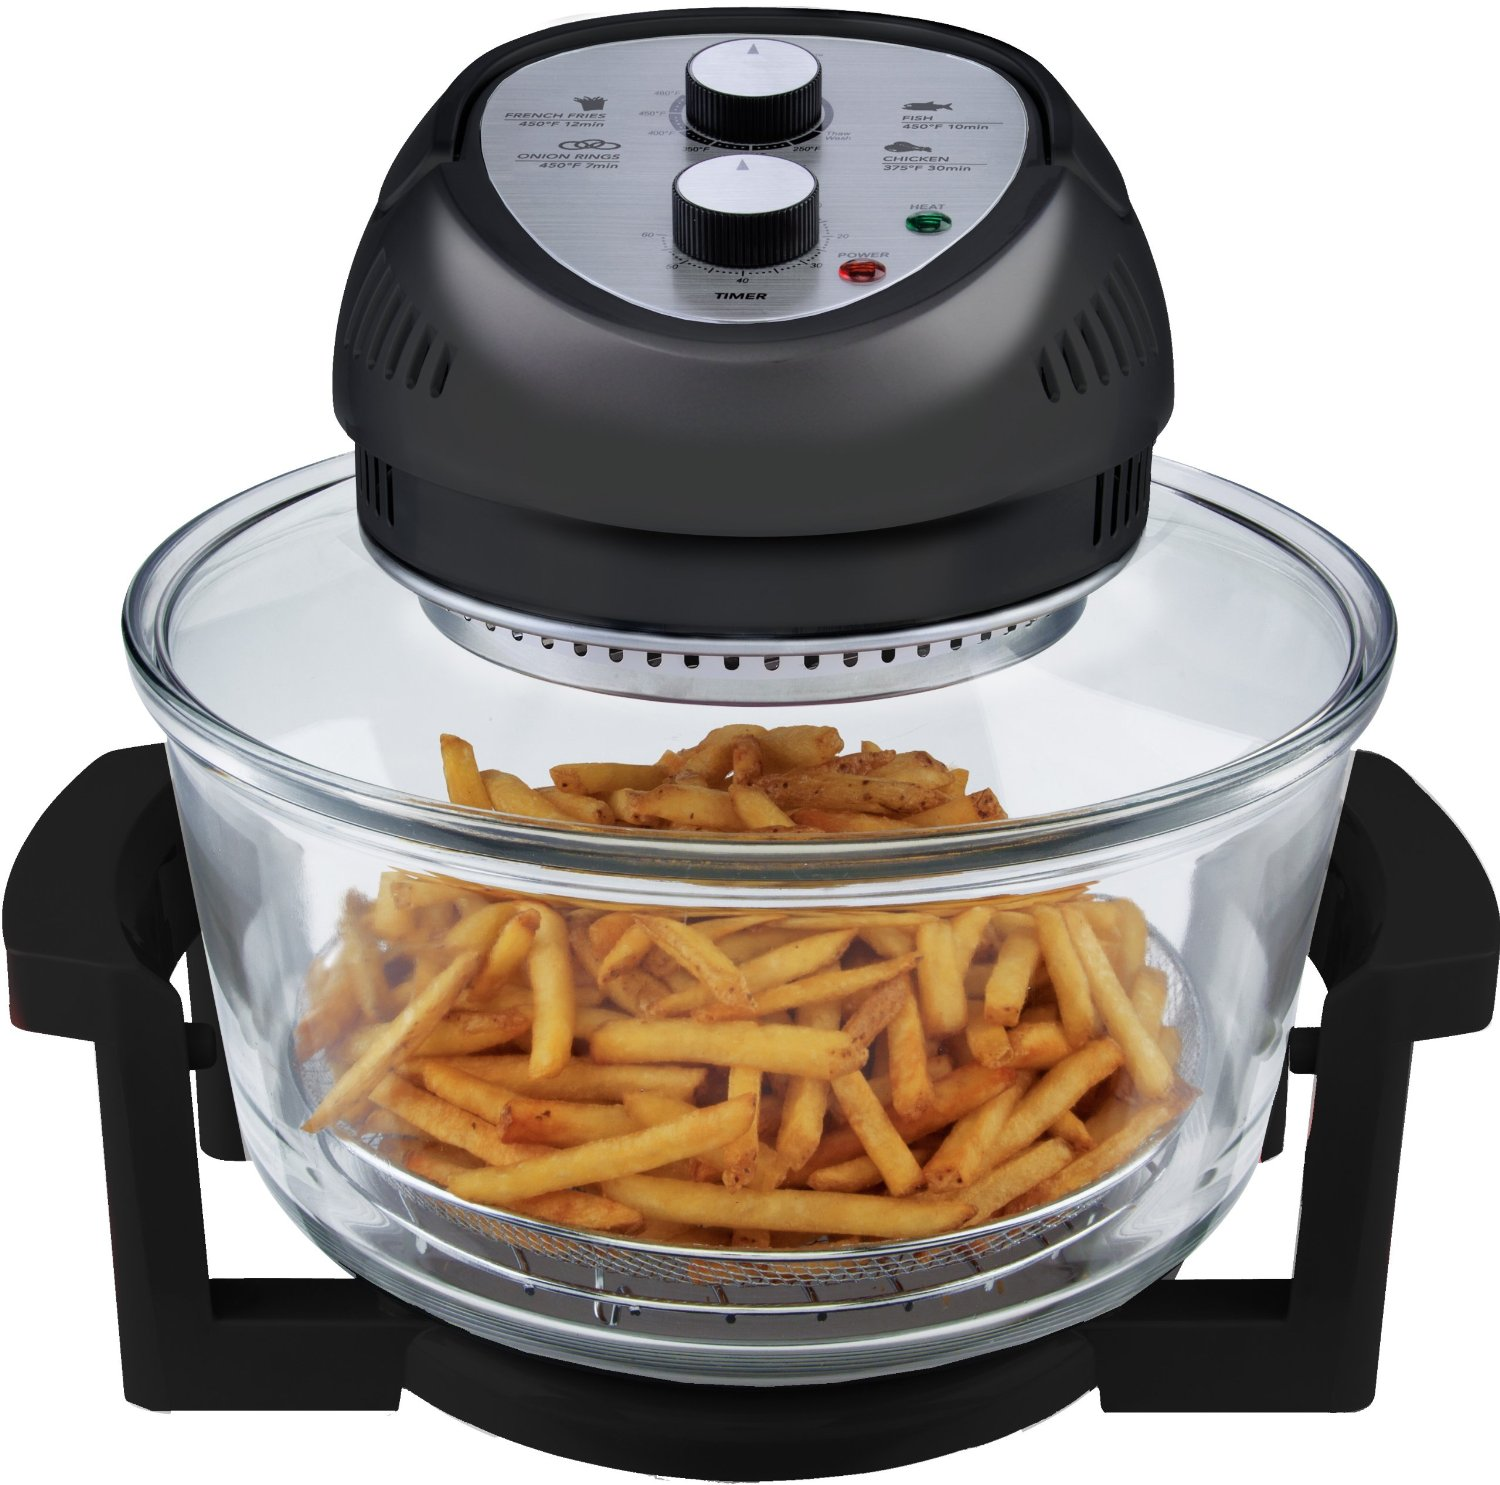 BIG BOSS 1300-Watt Oil-Less Fryer Review